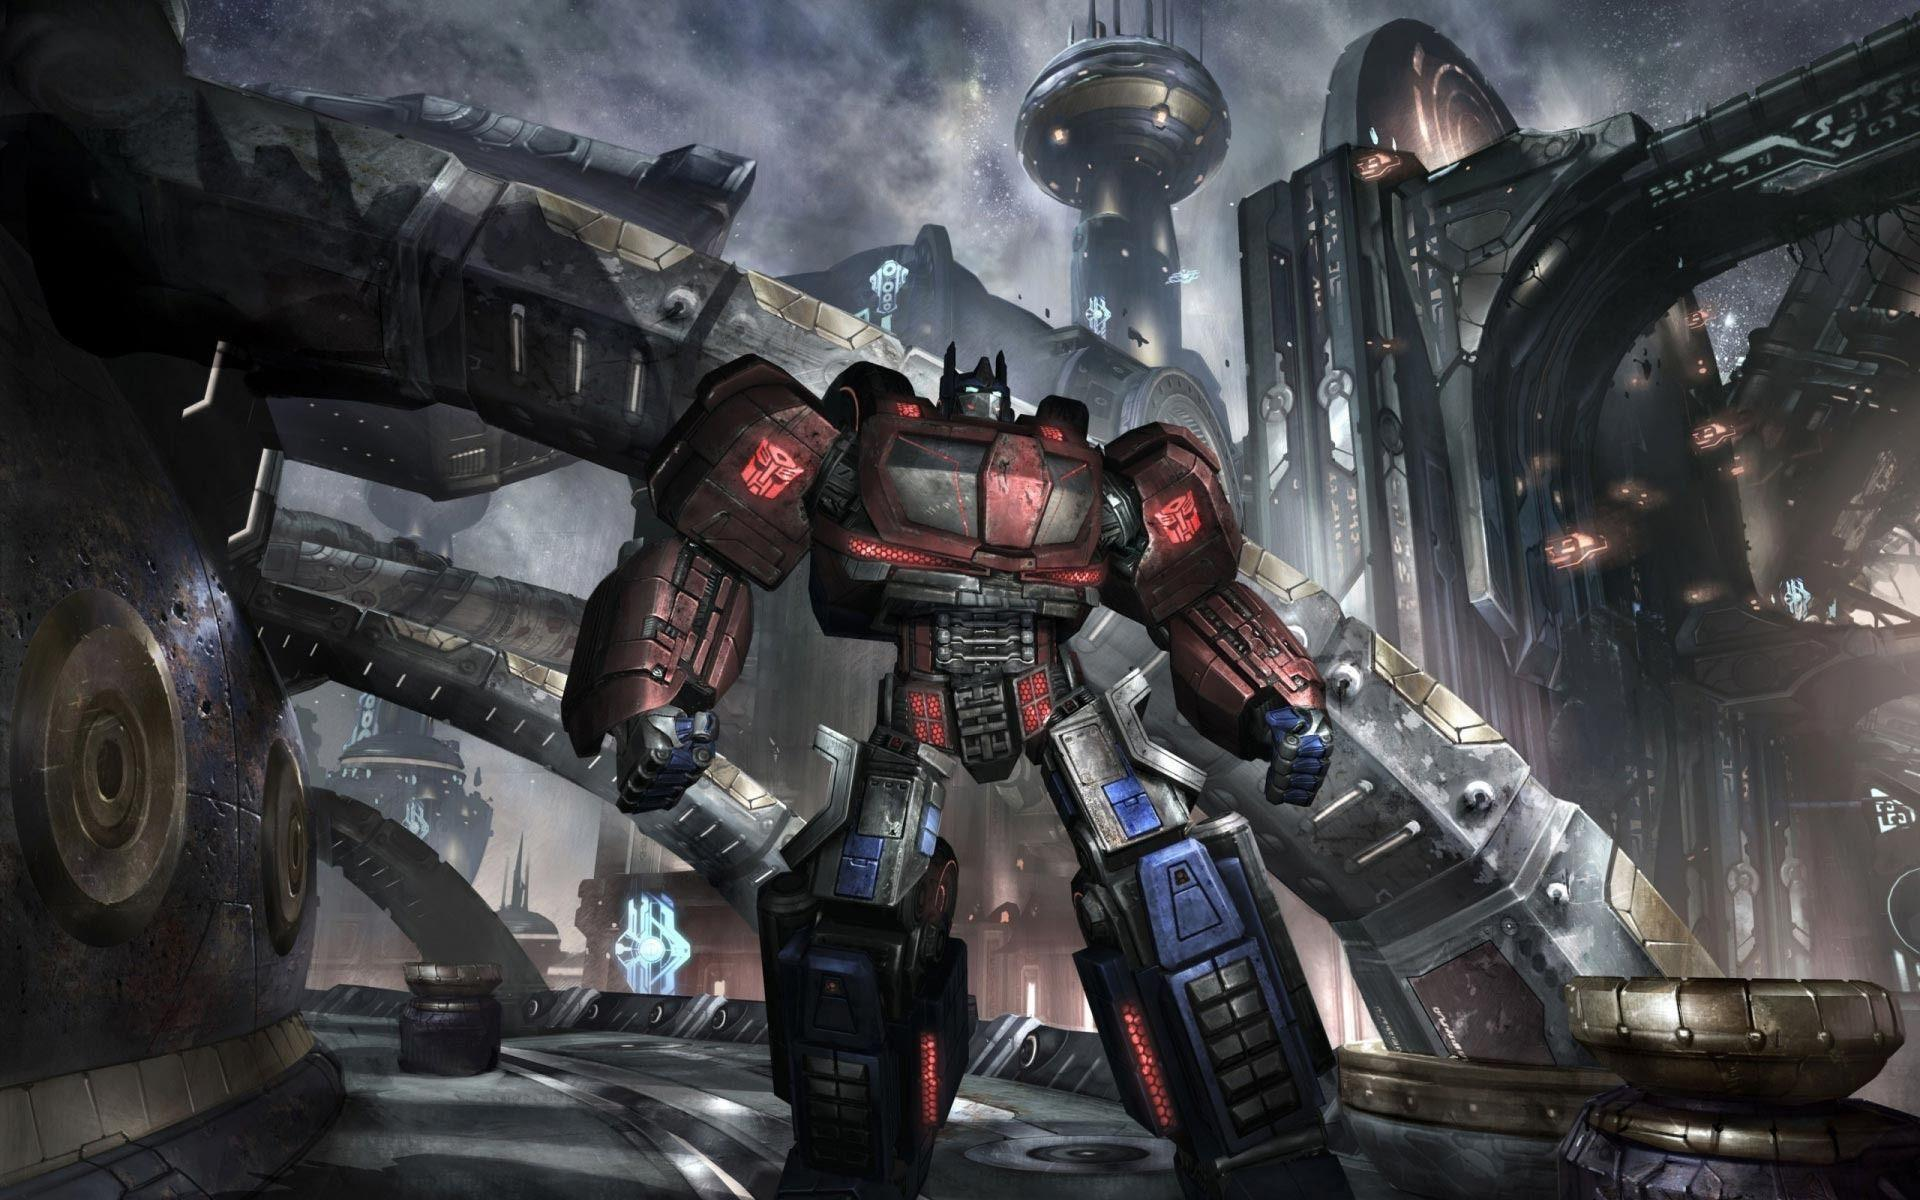 transformers cybertron wallpapers - wallpaper cave